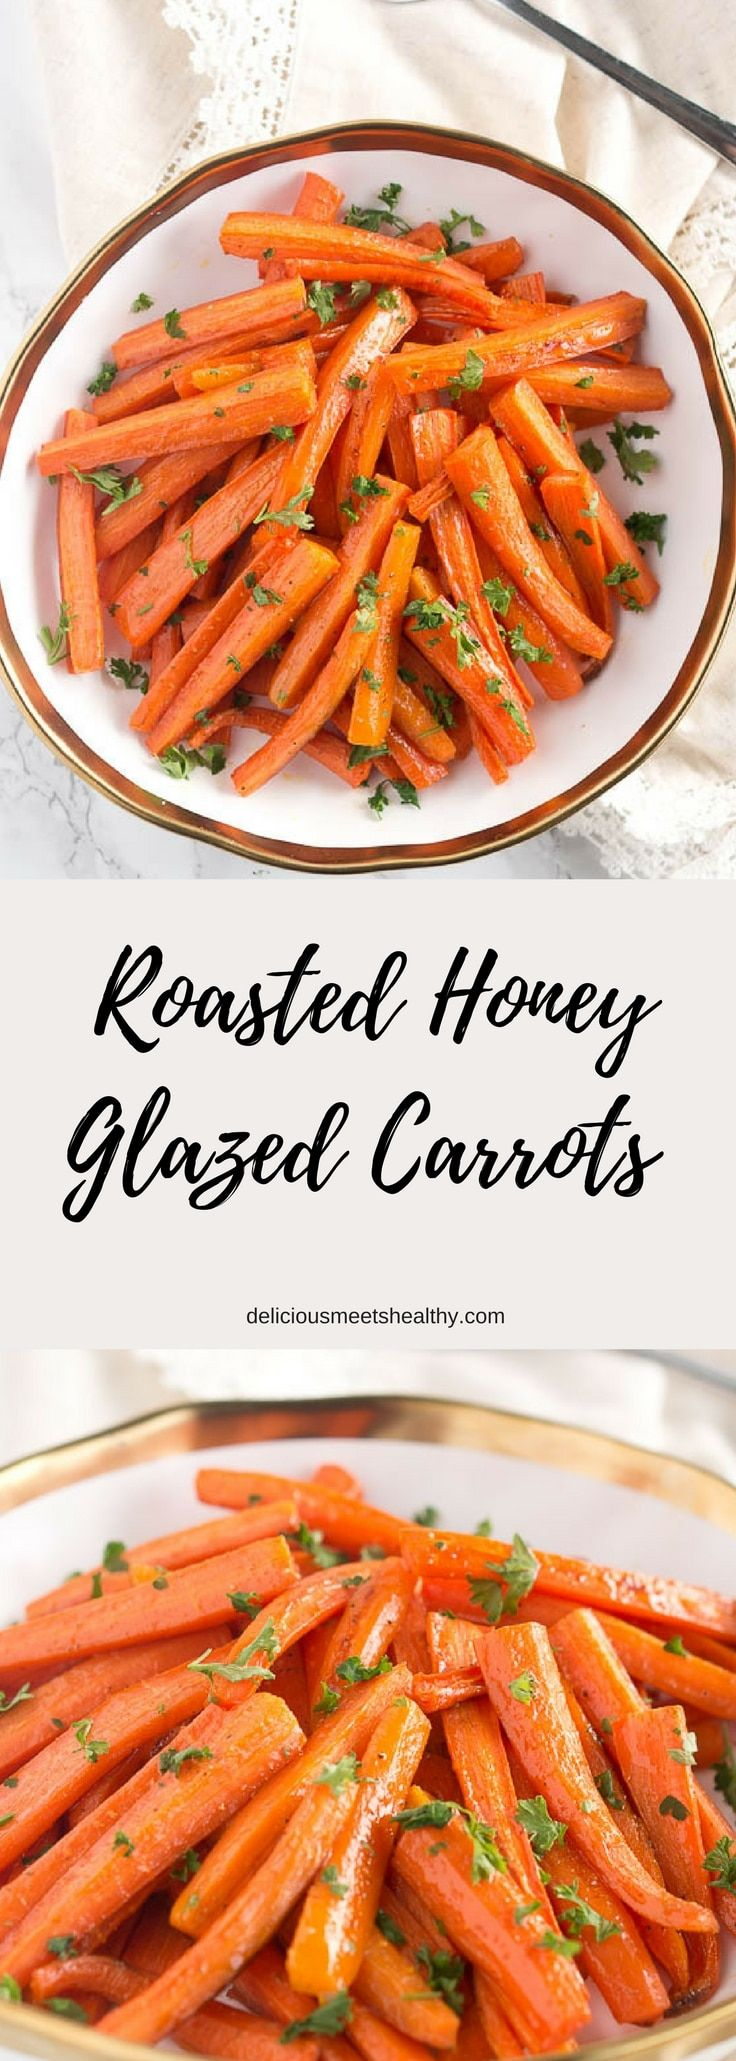 These roasted honey glazed carrots are Thanksgiving's easiest and tastiest side dish! Perfect for holidays or everyday side dish. via @NeliHoward